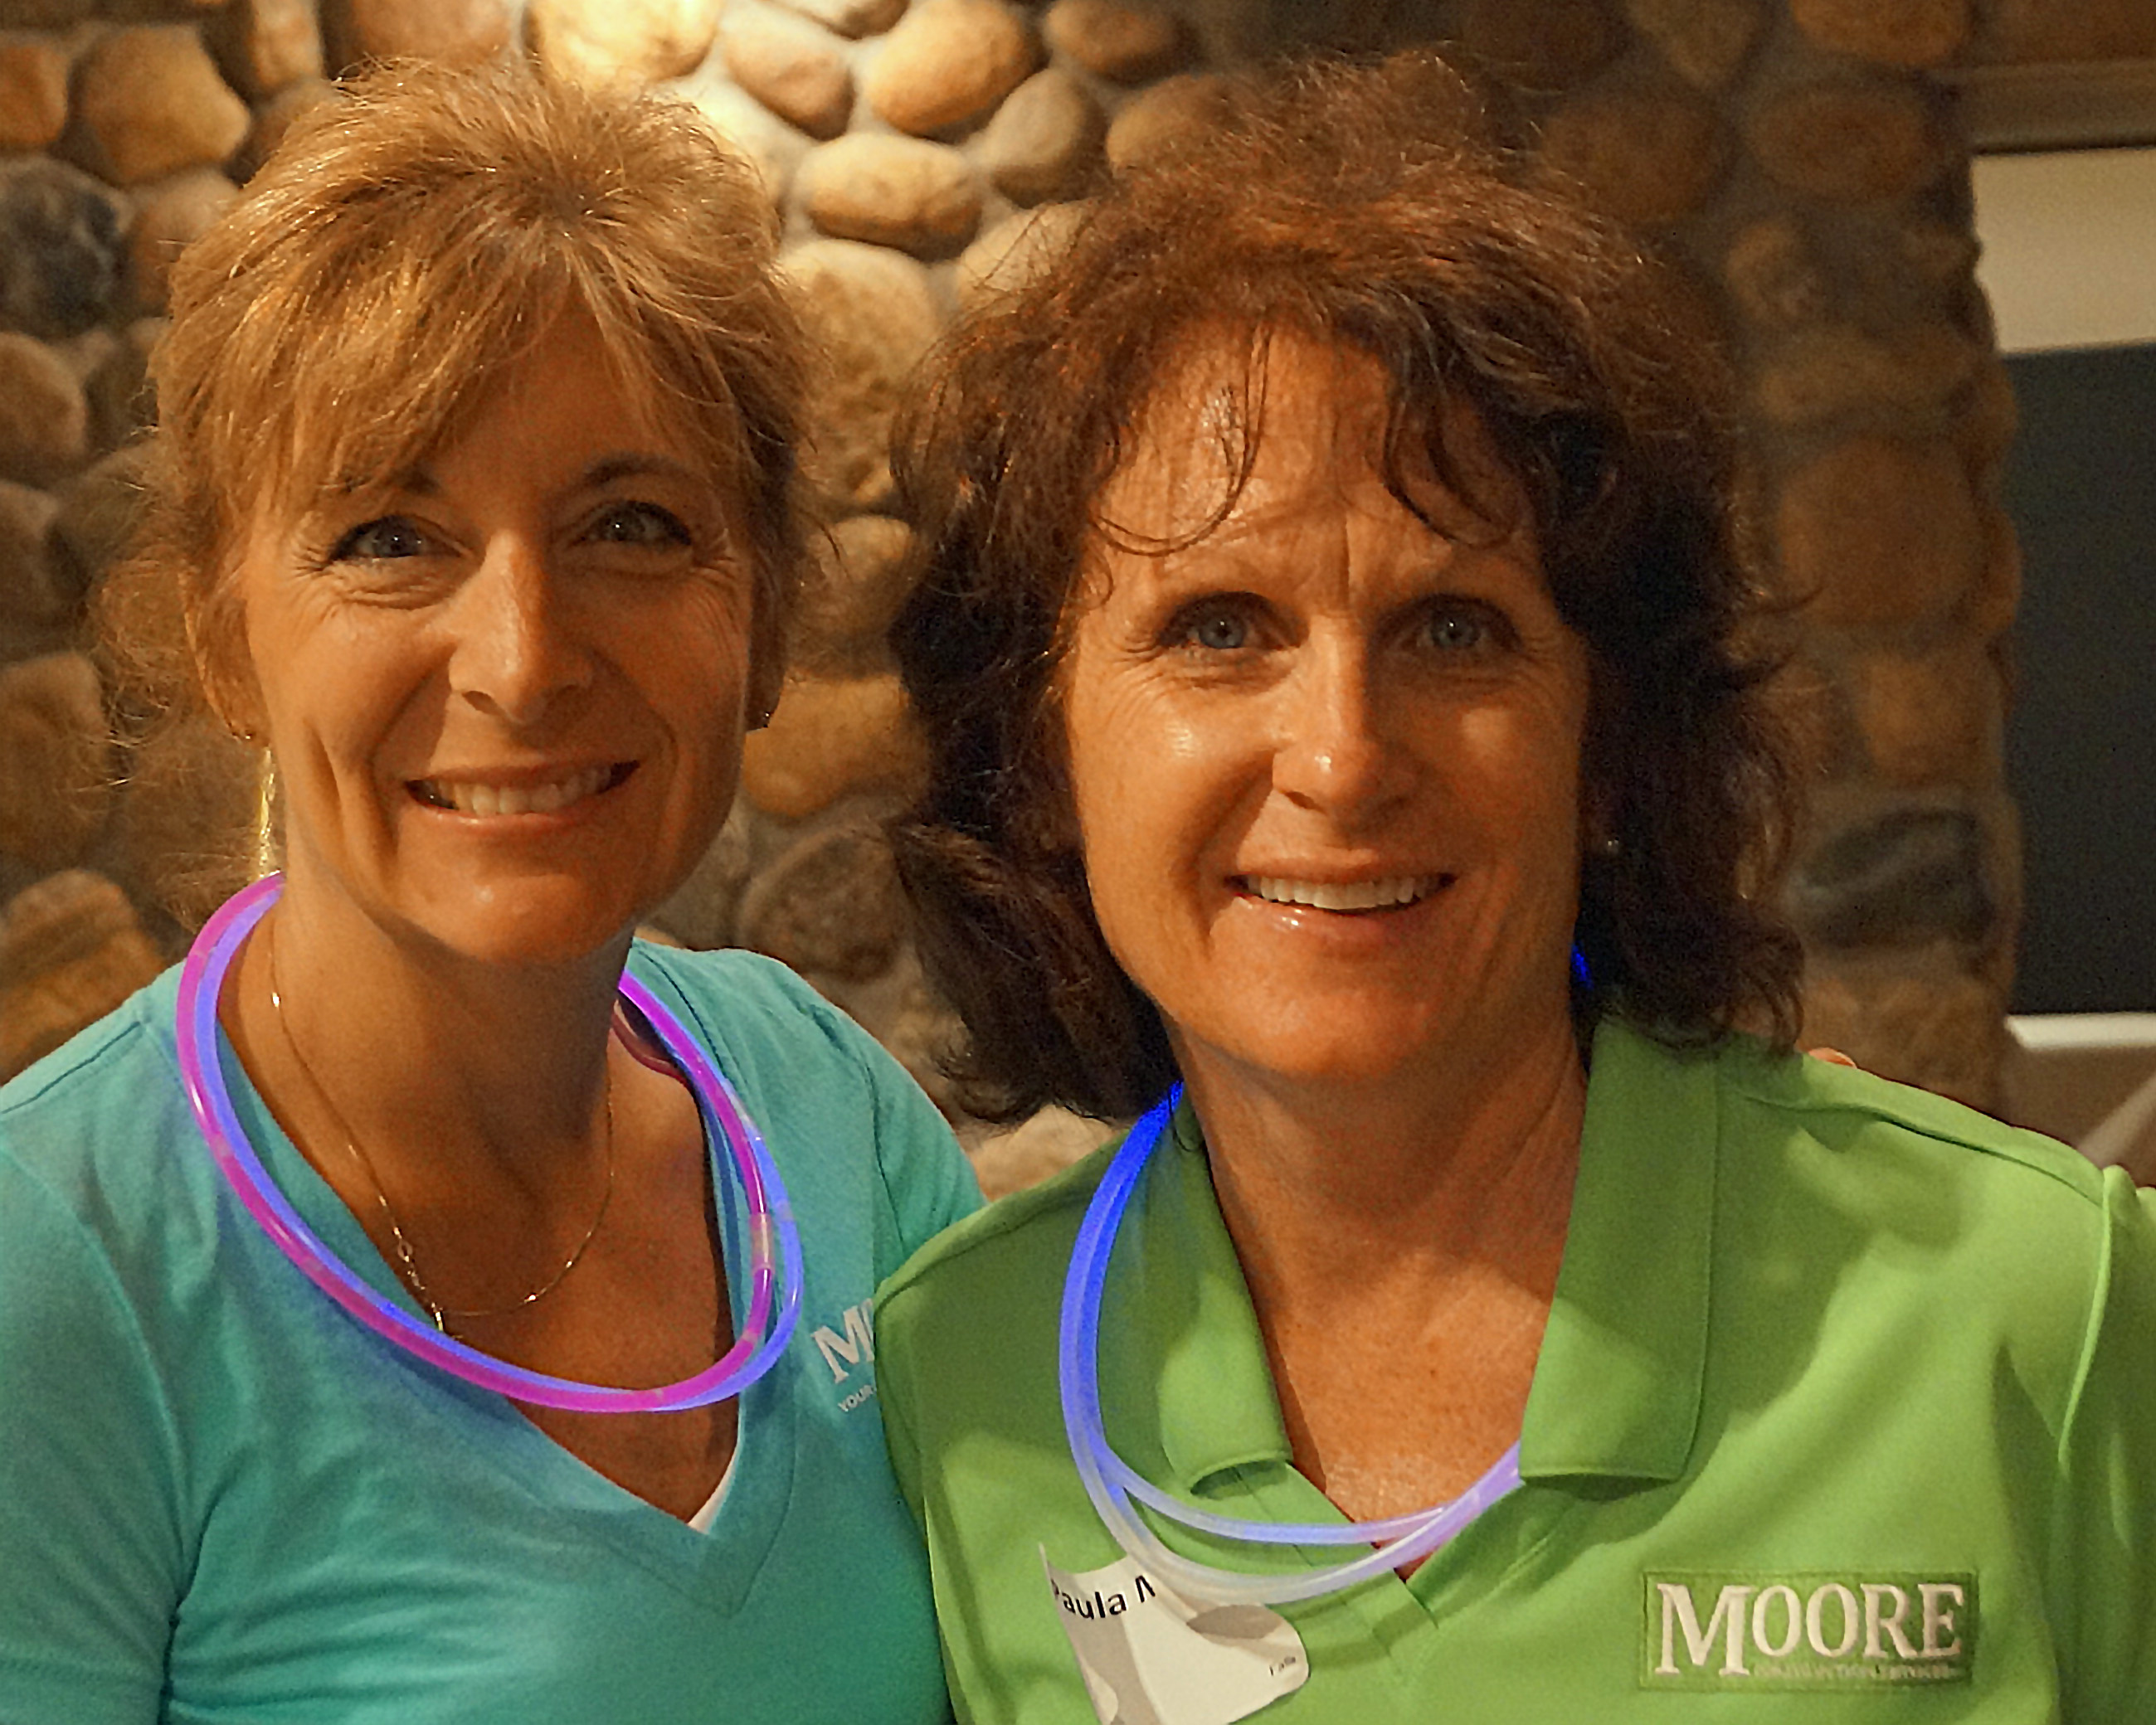 Two women are smiling brightly and wearing glow in the dark necklaces.